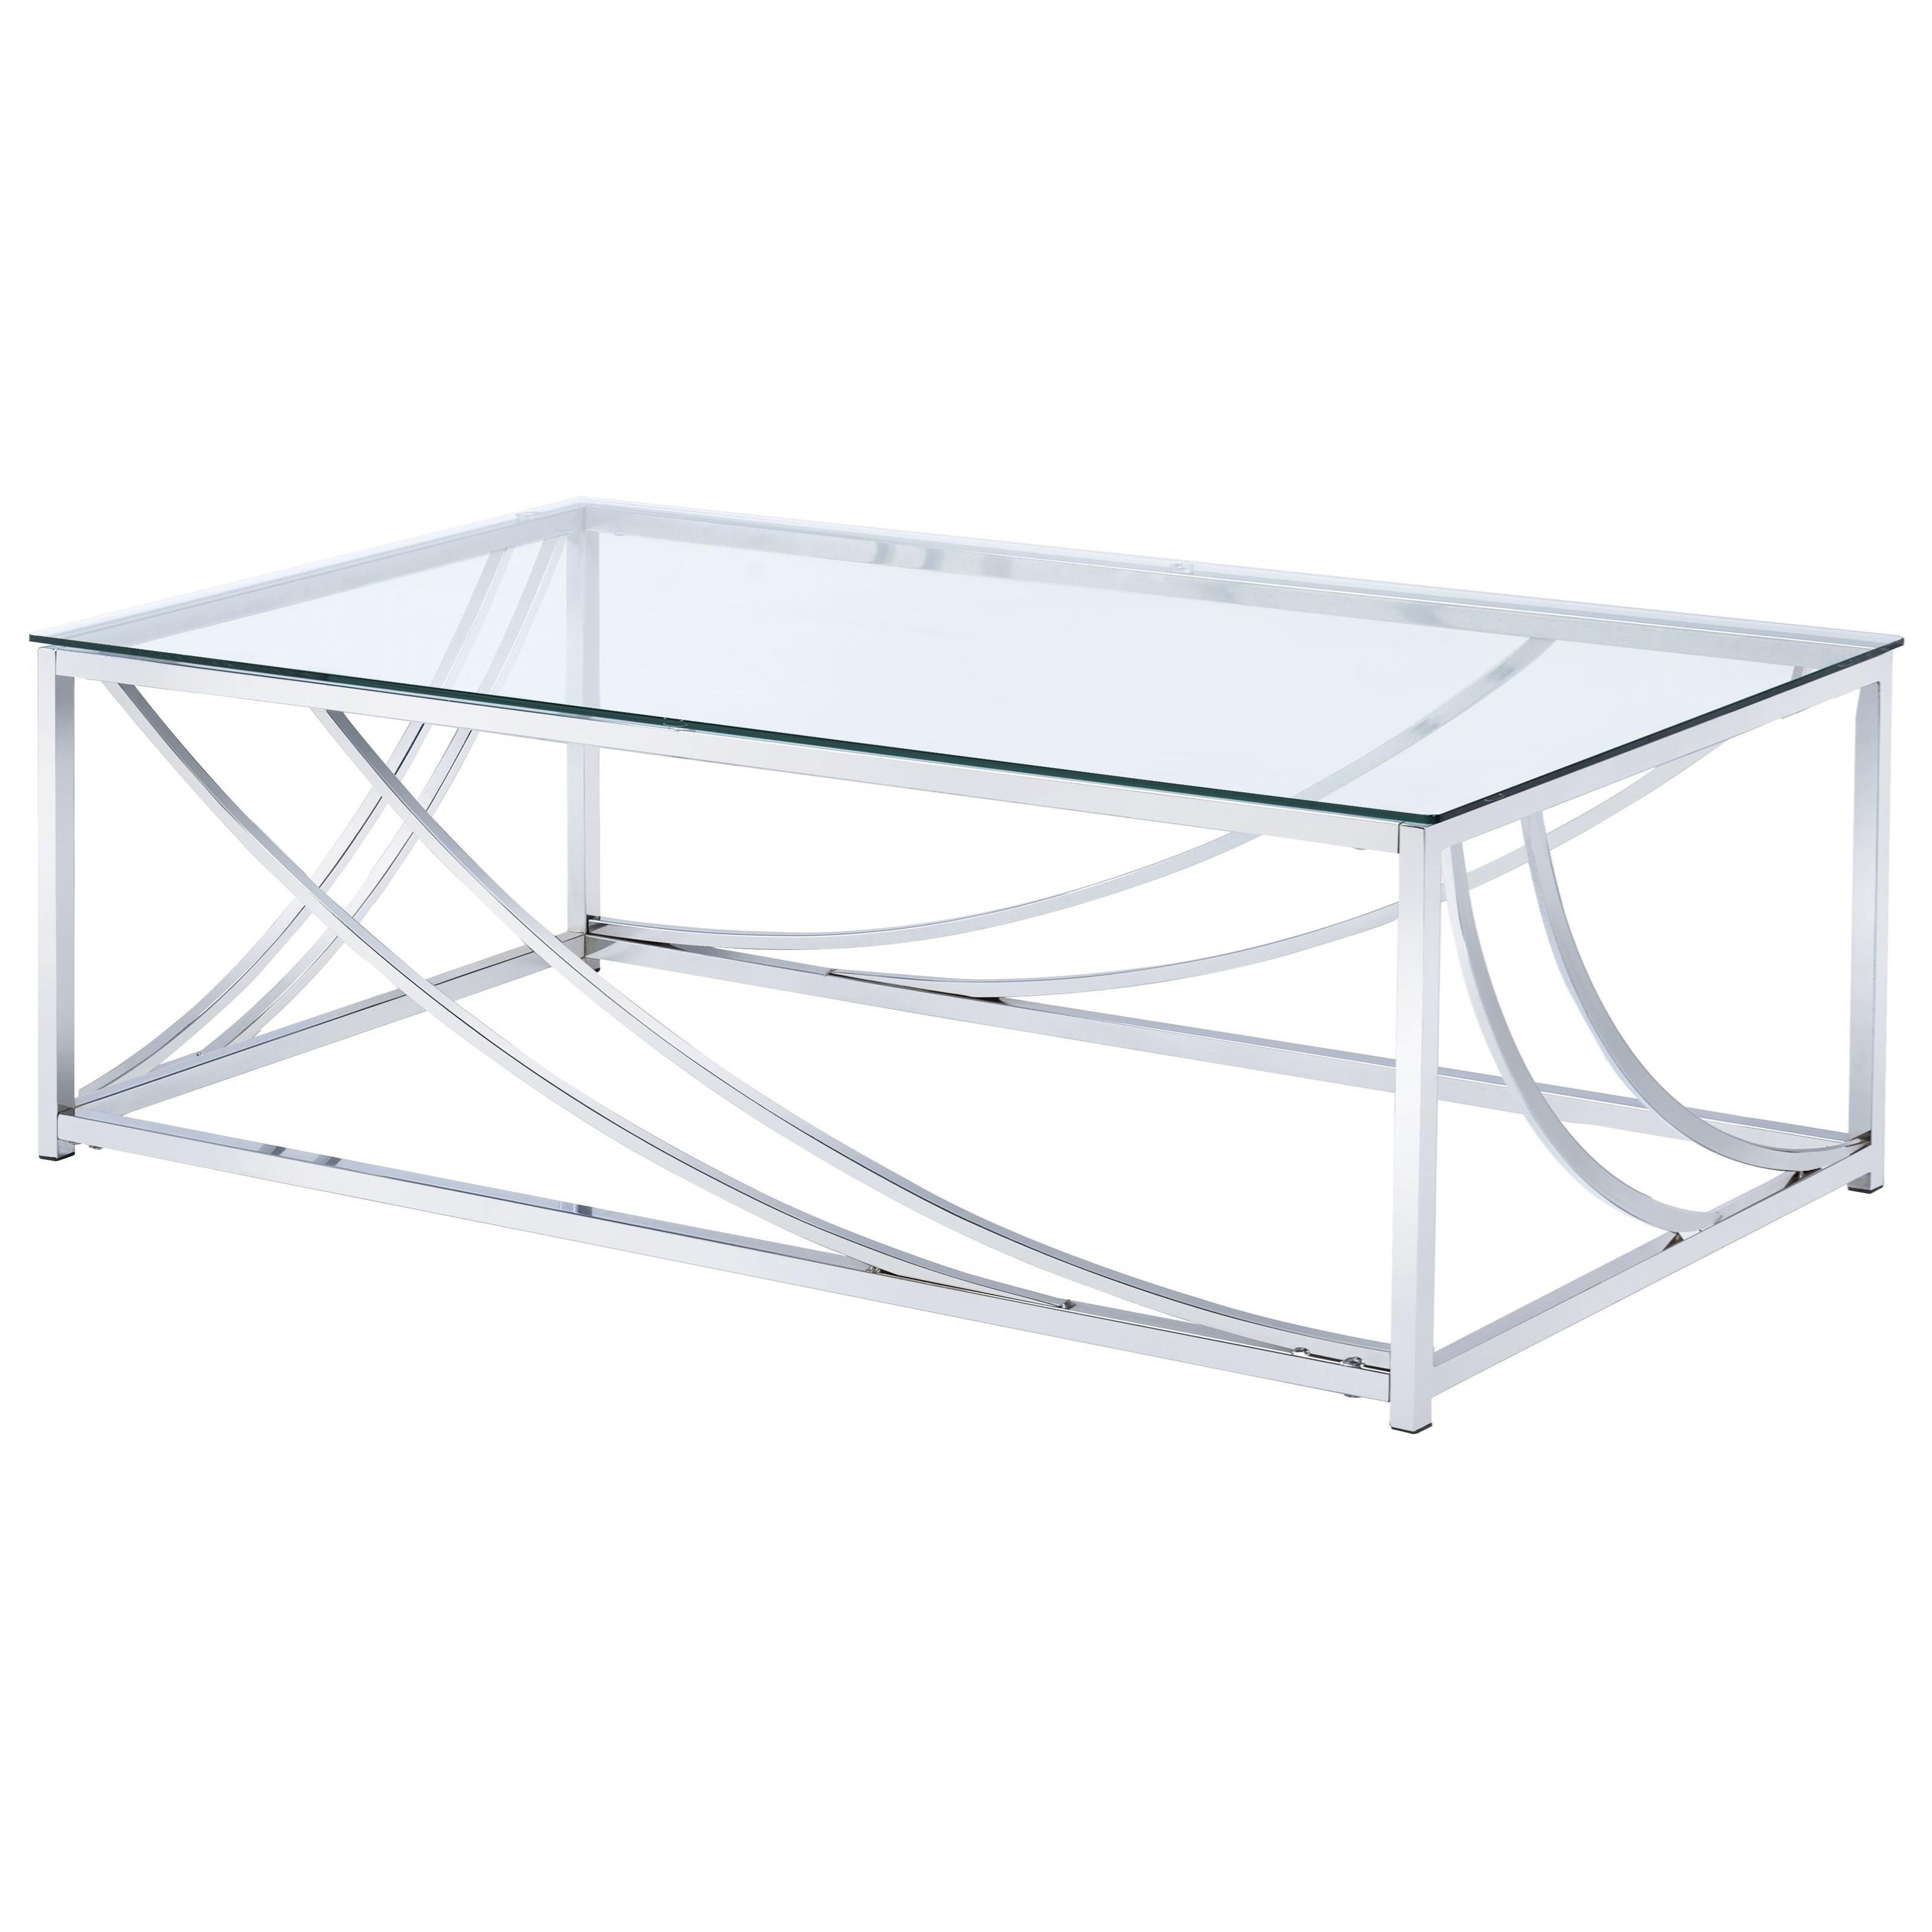 720490 Cocktail Table by Coaster at Northeast Factory Direct